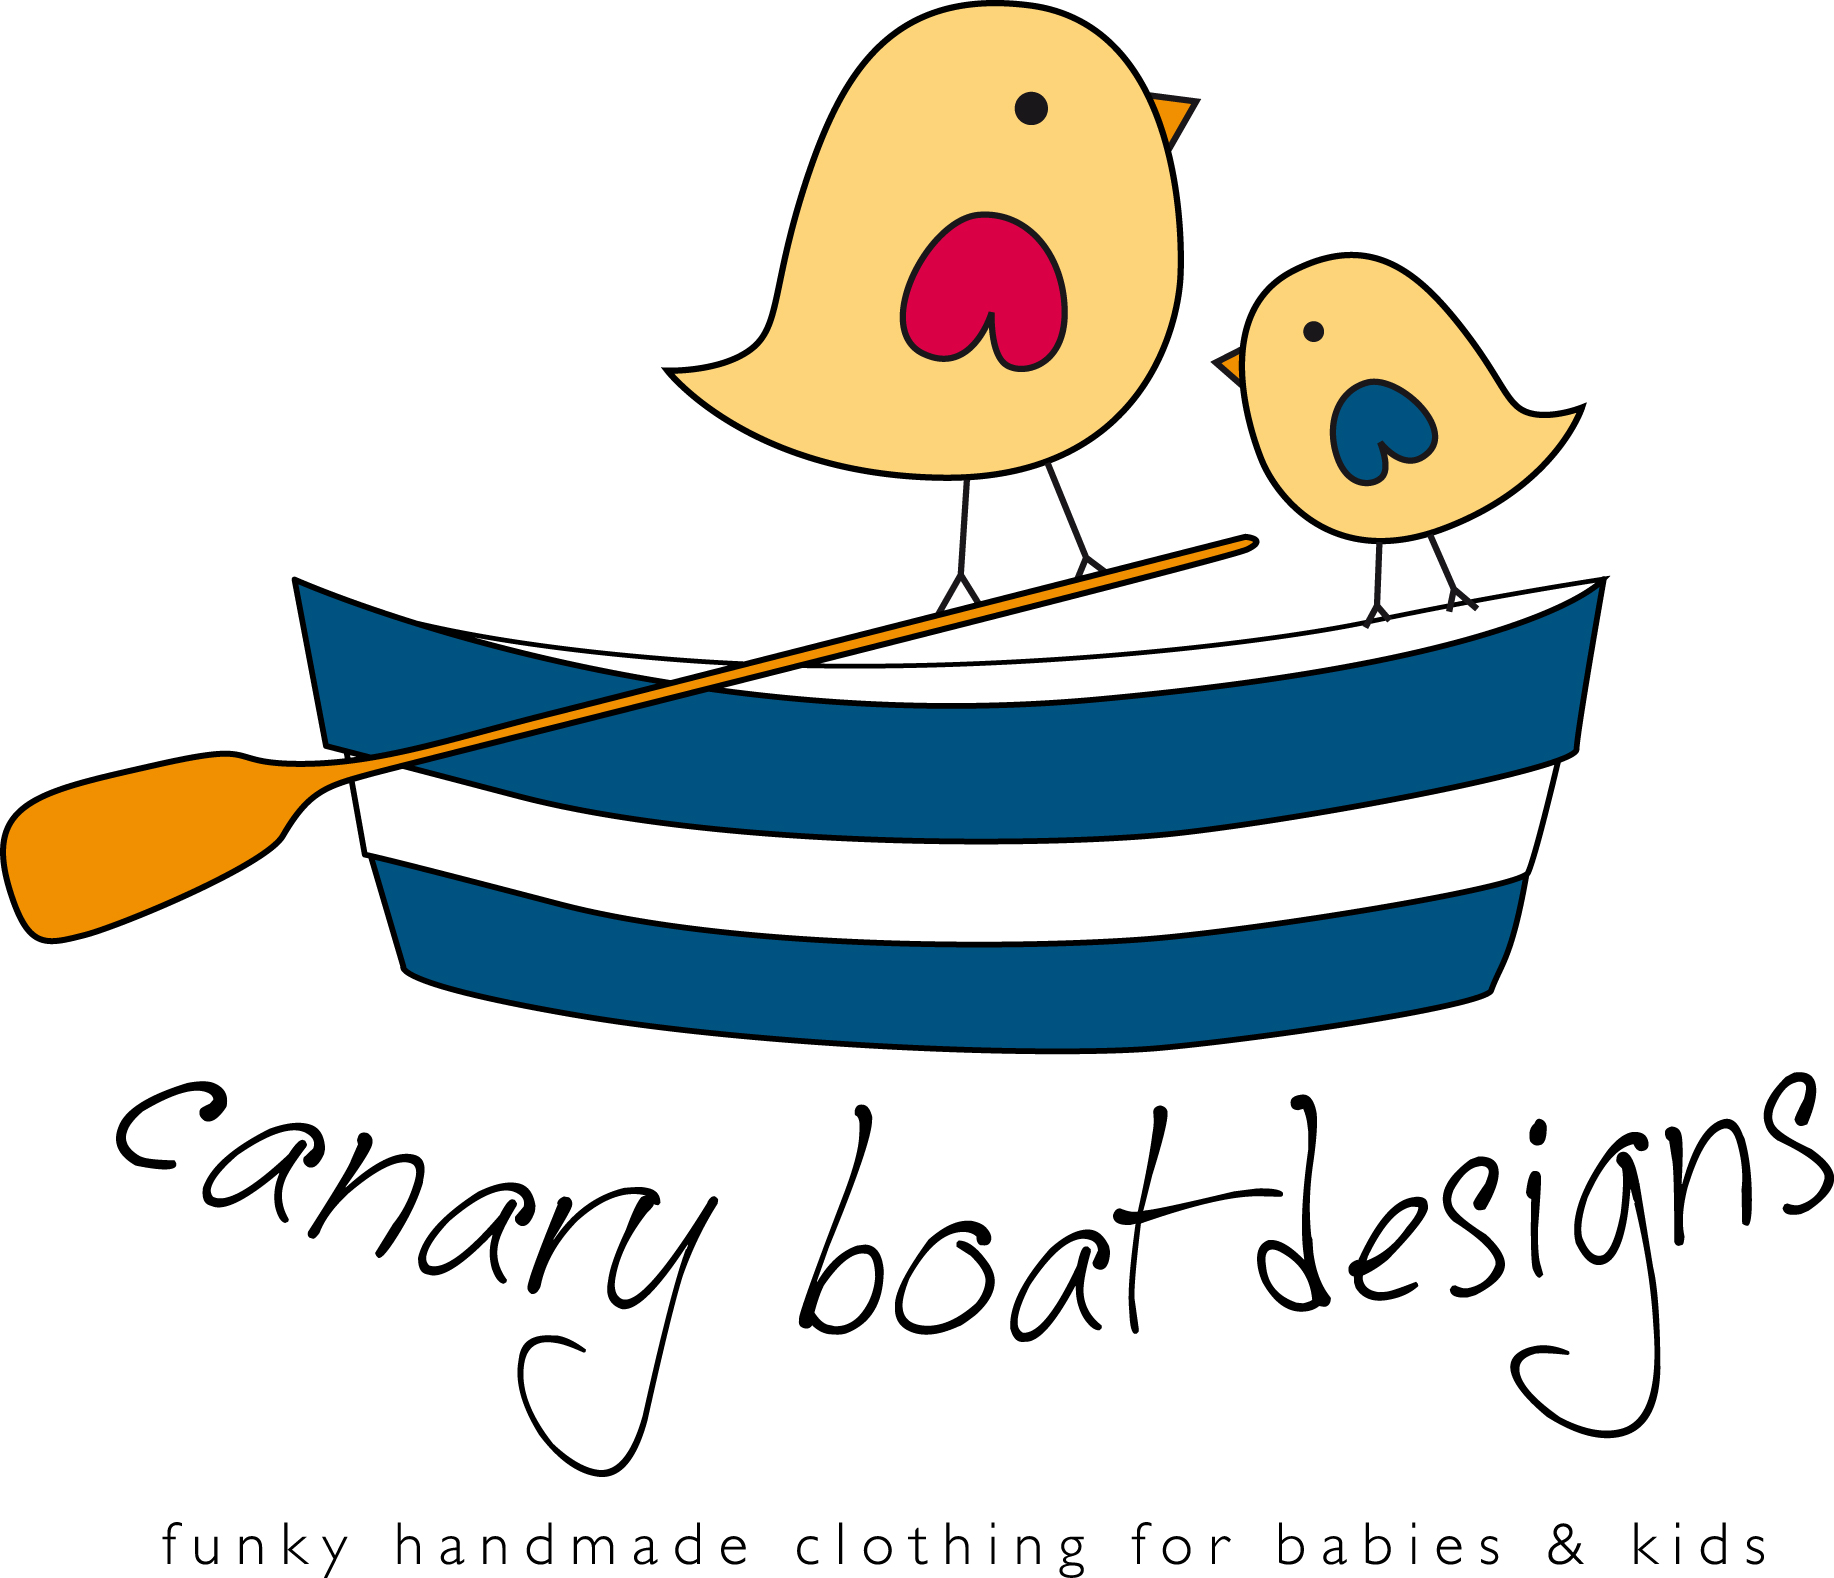 Canary Boat Designs